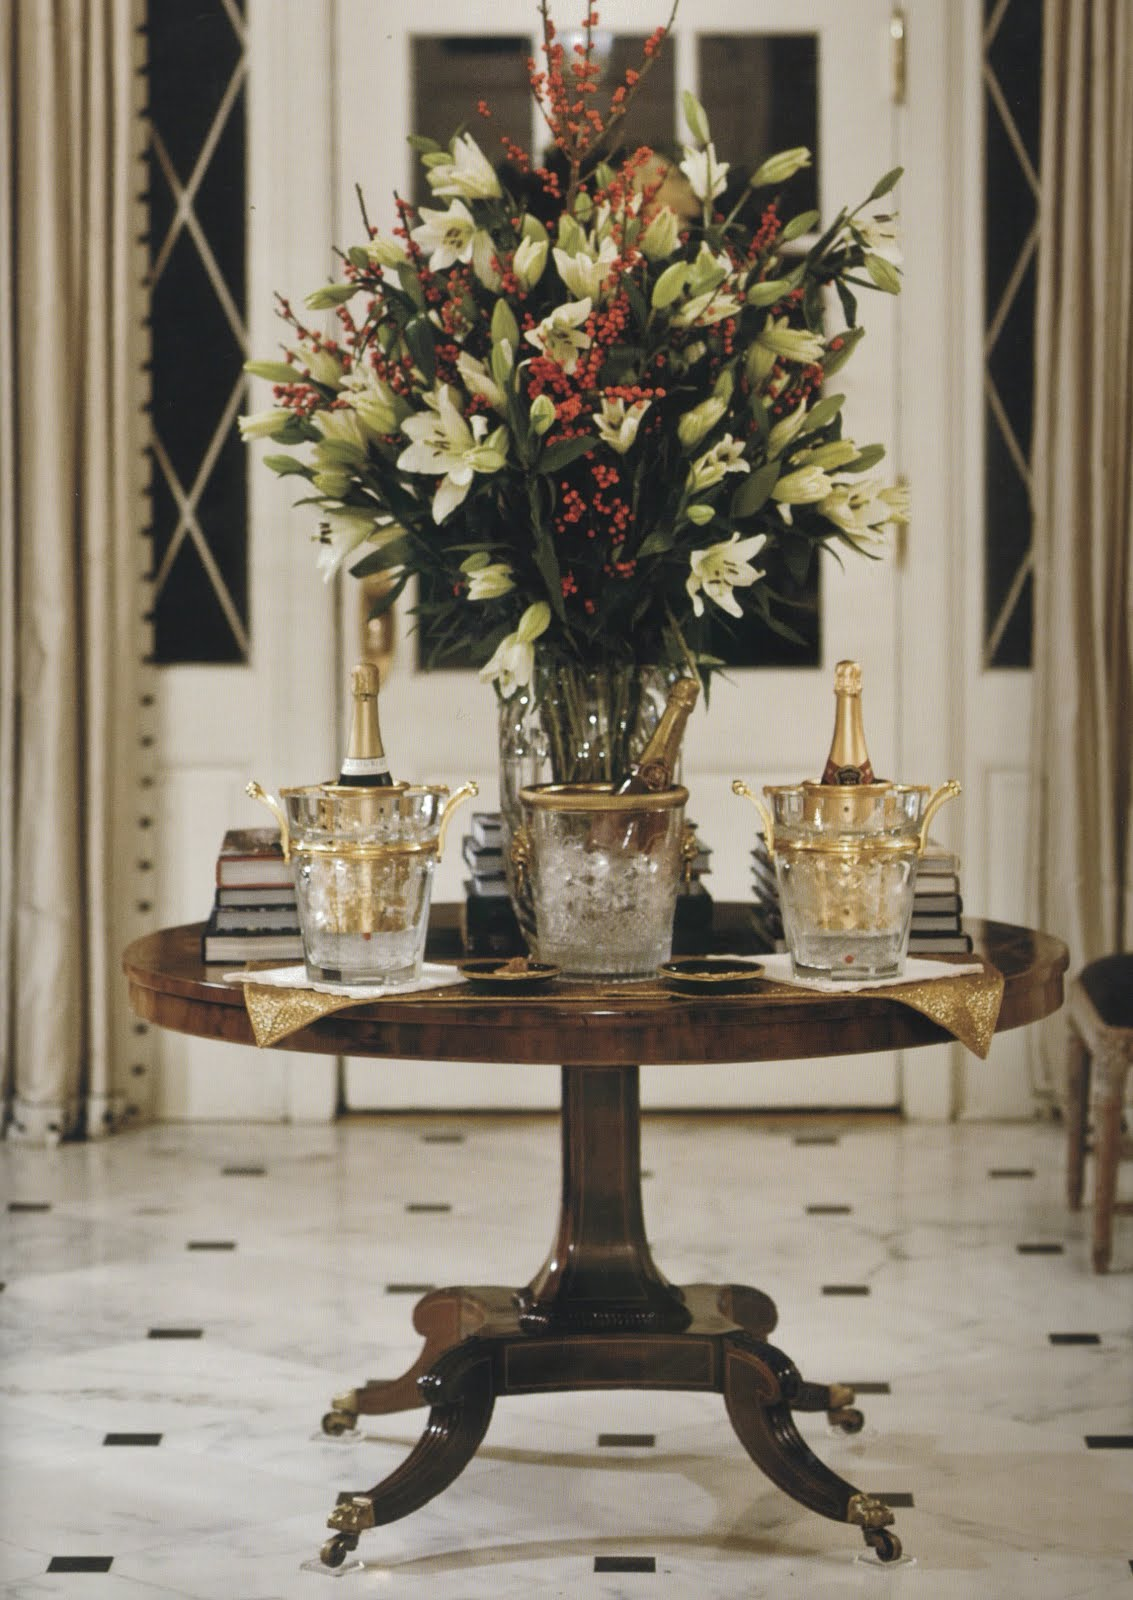 Foyer Table Flowers : Debbie jacobs interior design soiree with danielle rollins